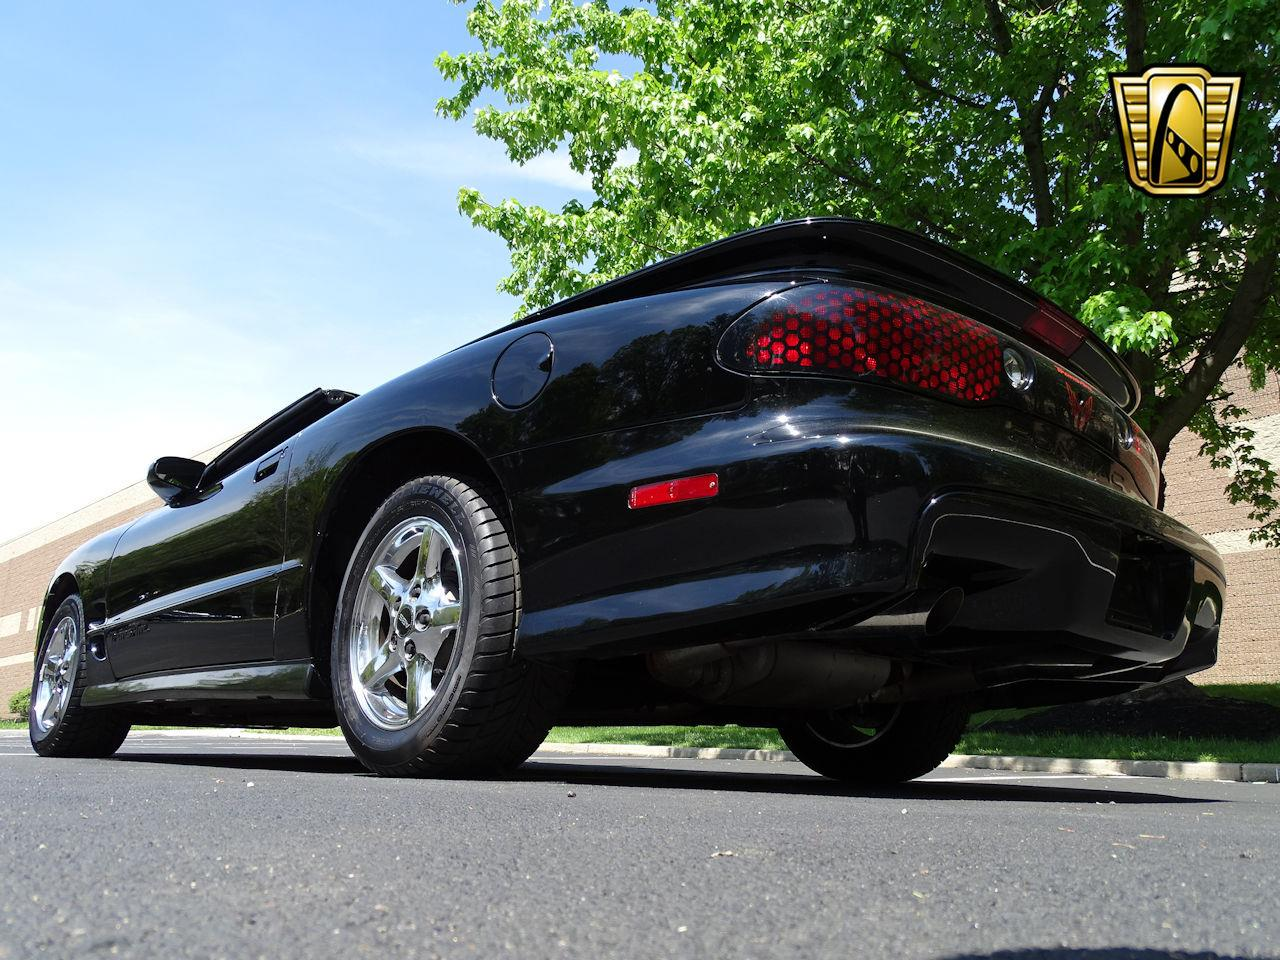 Large Picture of '00 Pontiac Firebird located in West Deptford New Jersey - $17,595.00 Offered by Gateway Classic Cars - Philadelphia - M5ID